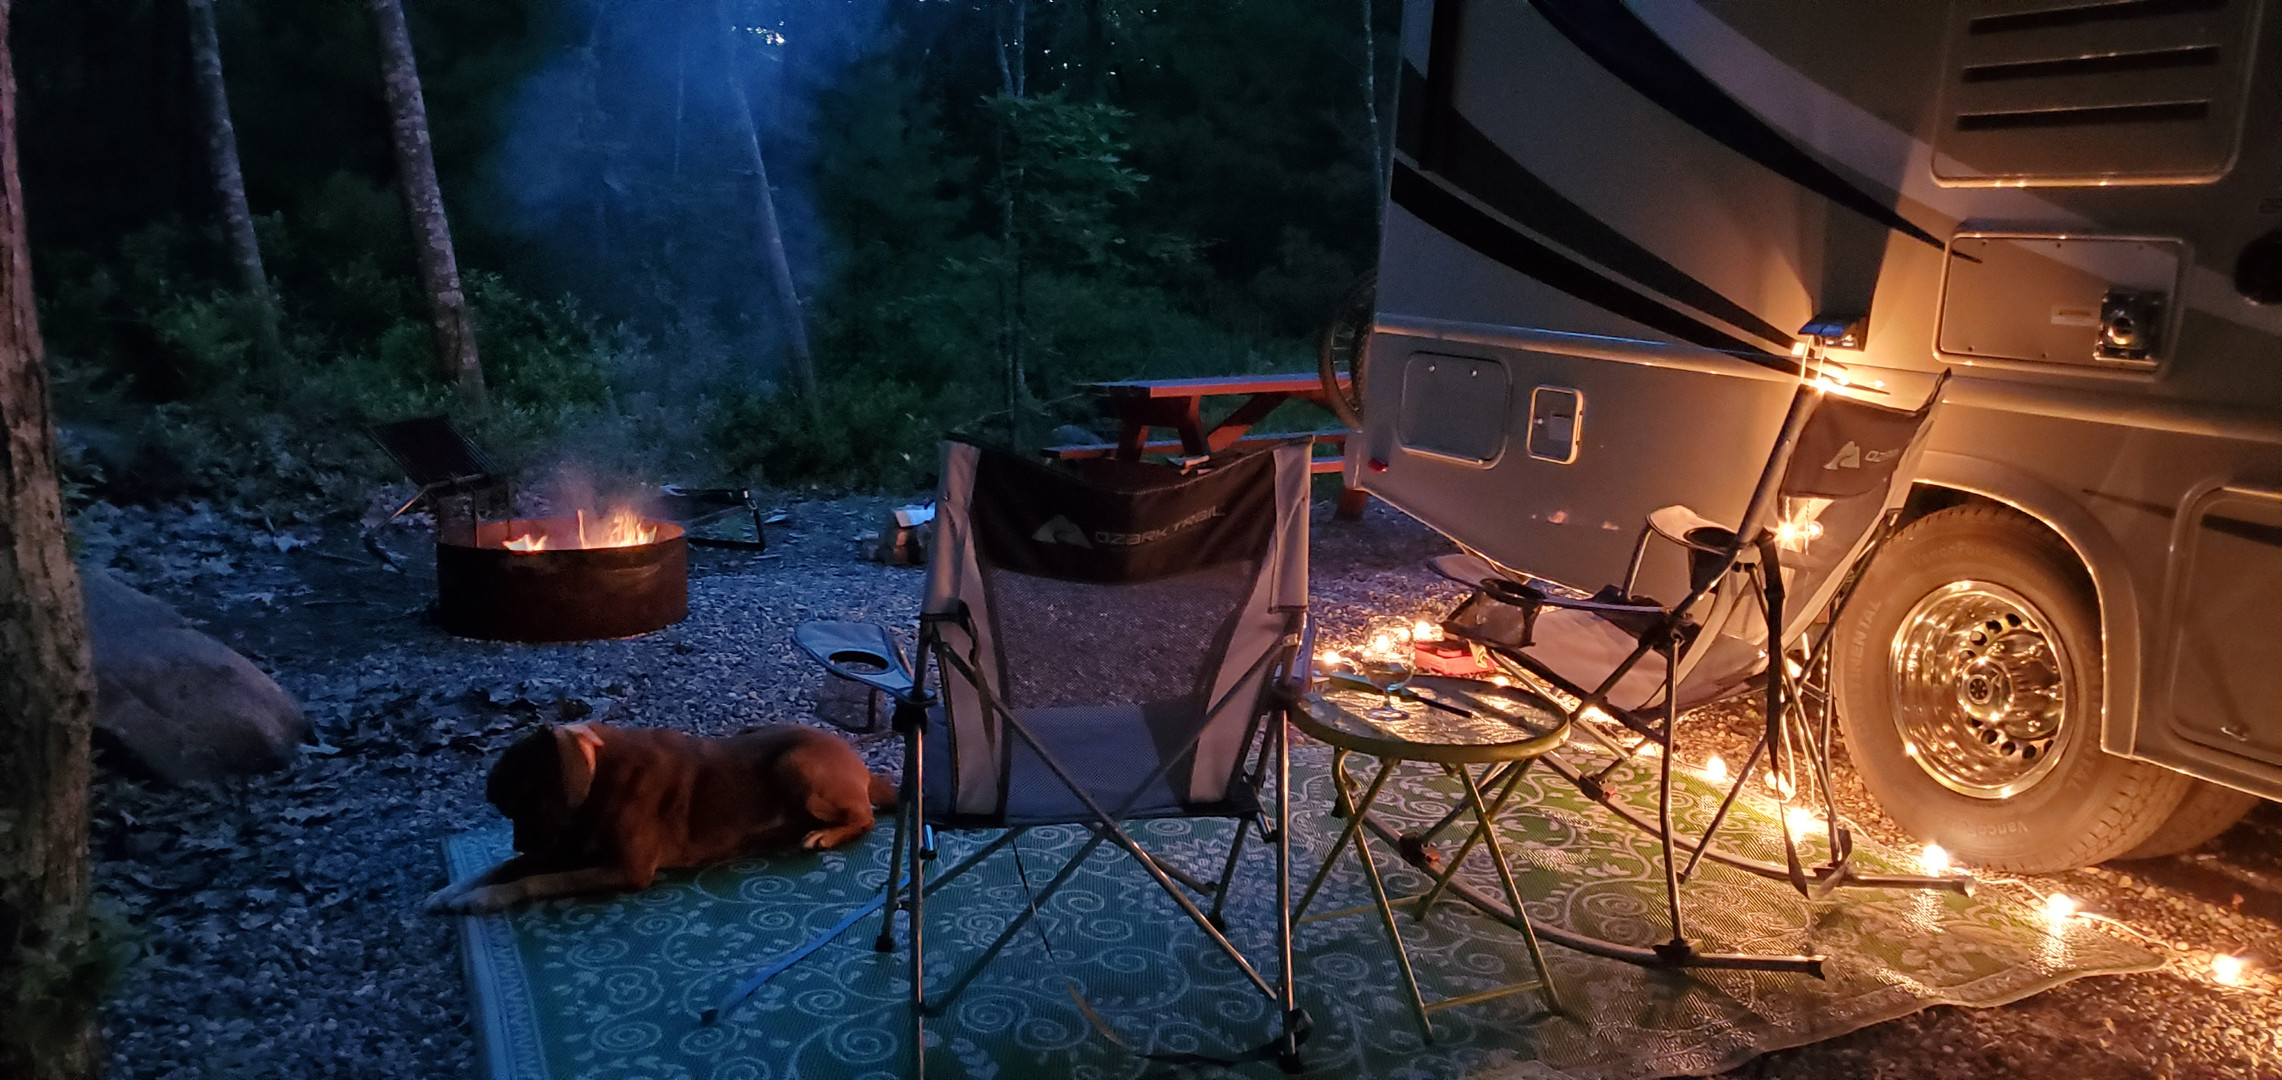 Evening at the camp.